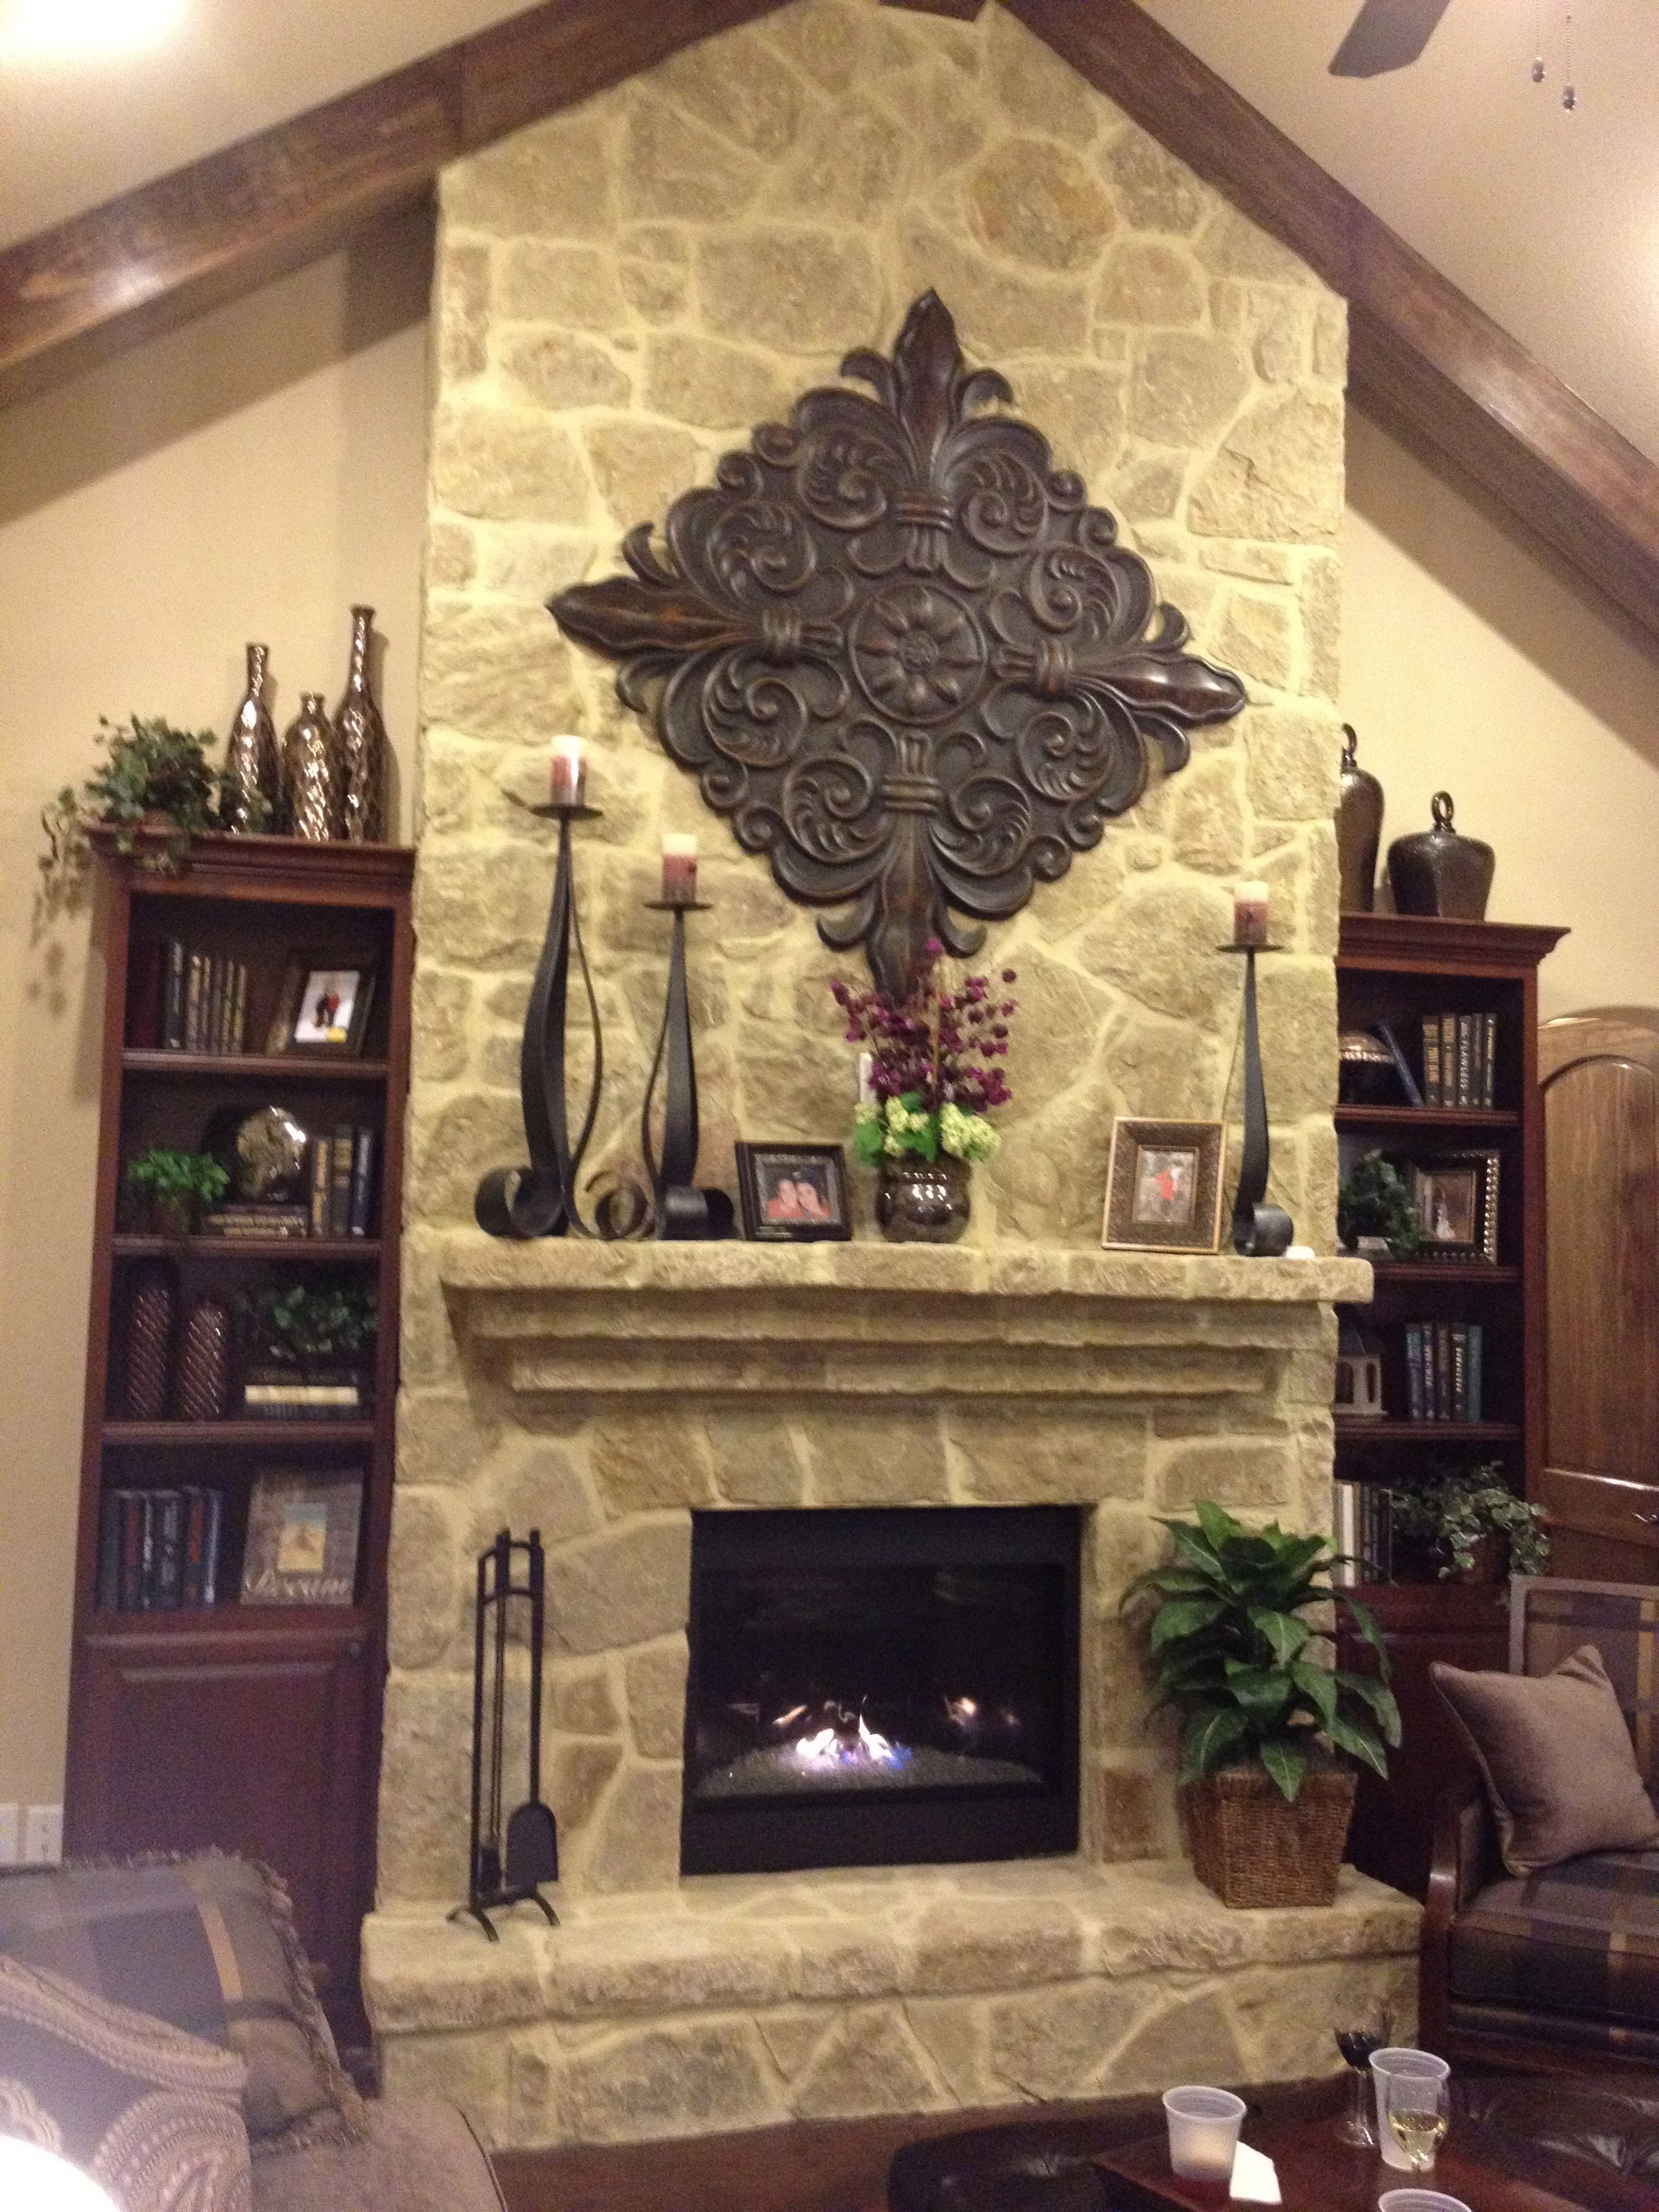 How To Decorate A Rustic Fireplace Mantel Decor Indoor Home Decorators Catalog Best Ideas of Home Decor and Design [homedecoratorscatalog.us]